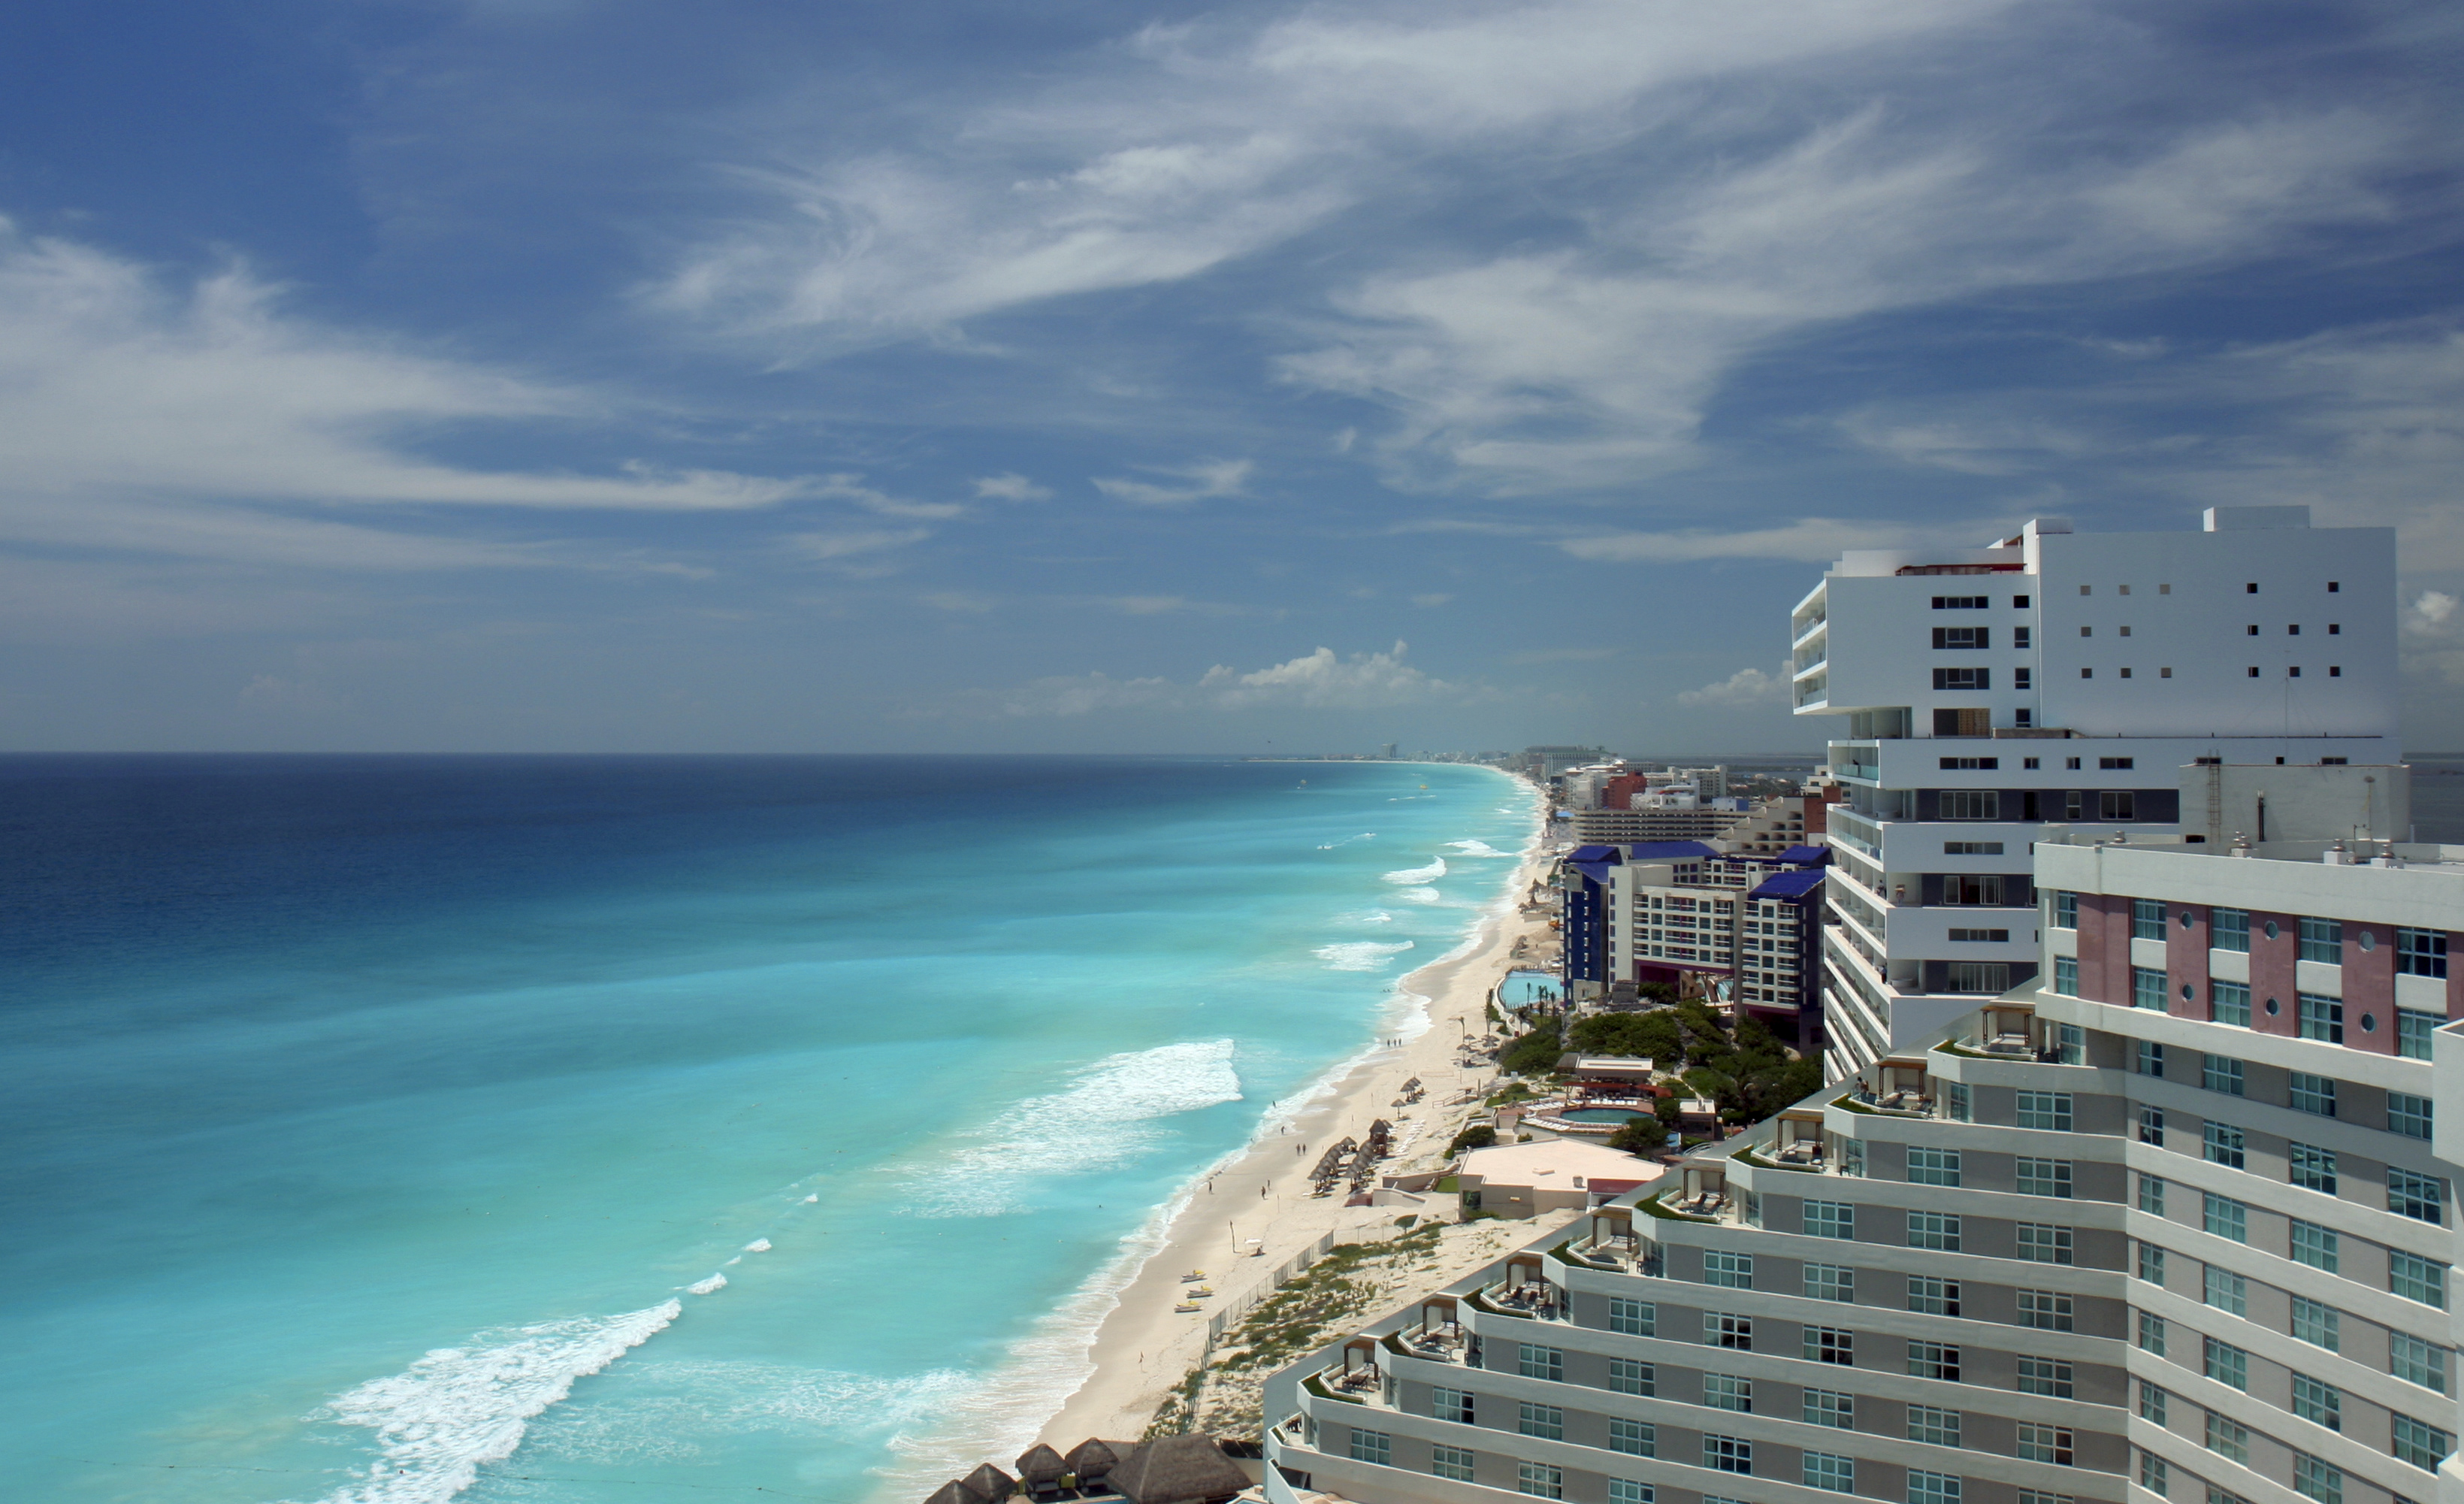 Hotels On The Beach In Cancun Hd Wallpaper Background Image 3279x2001 Id 793140 Wallpaper Abyss